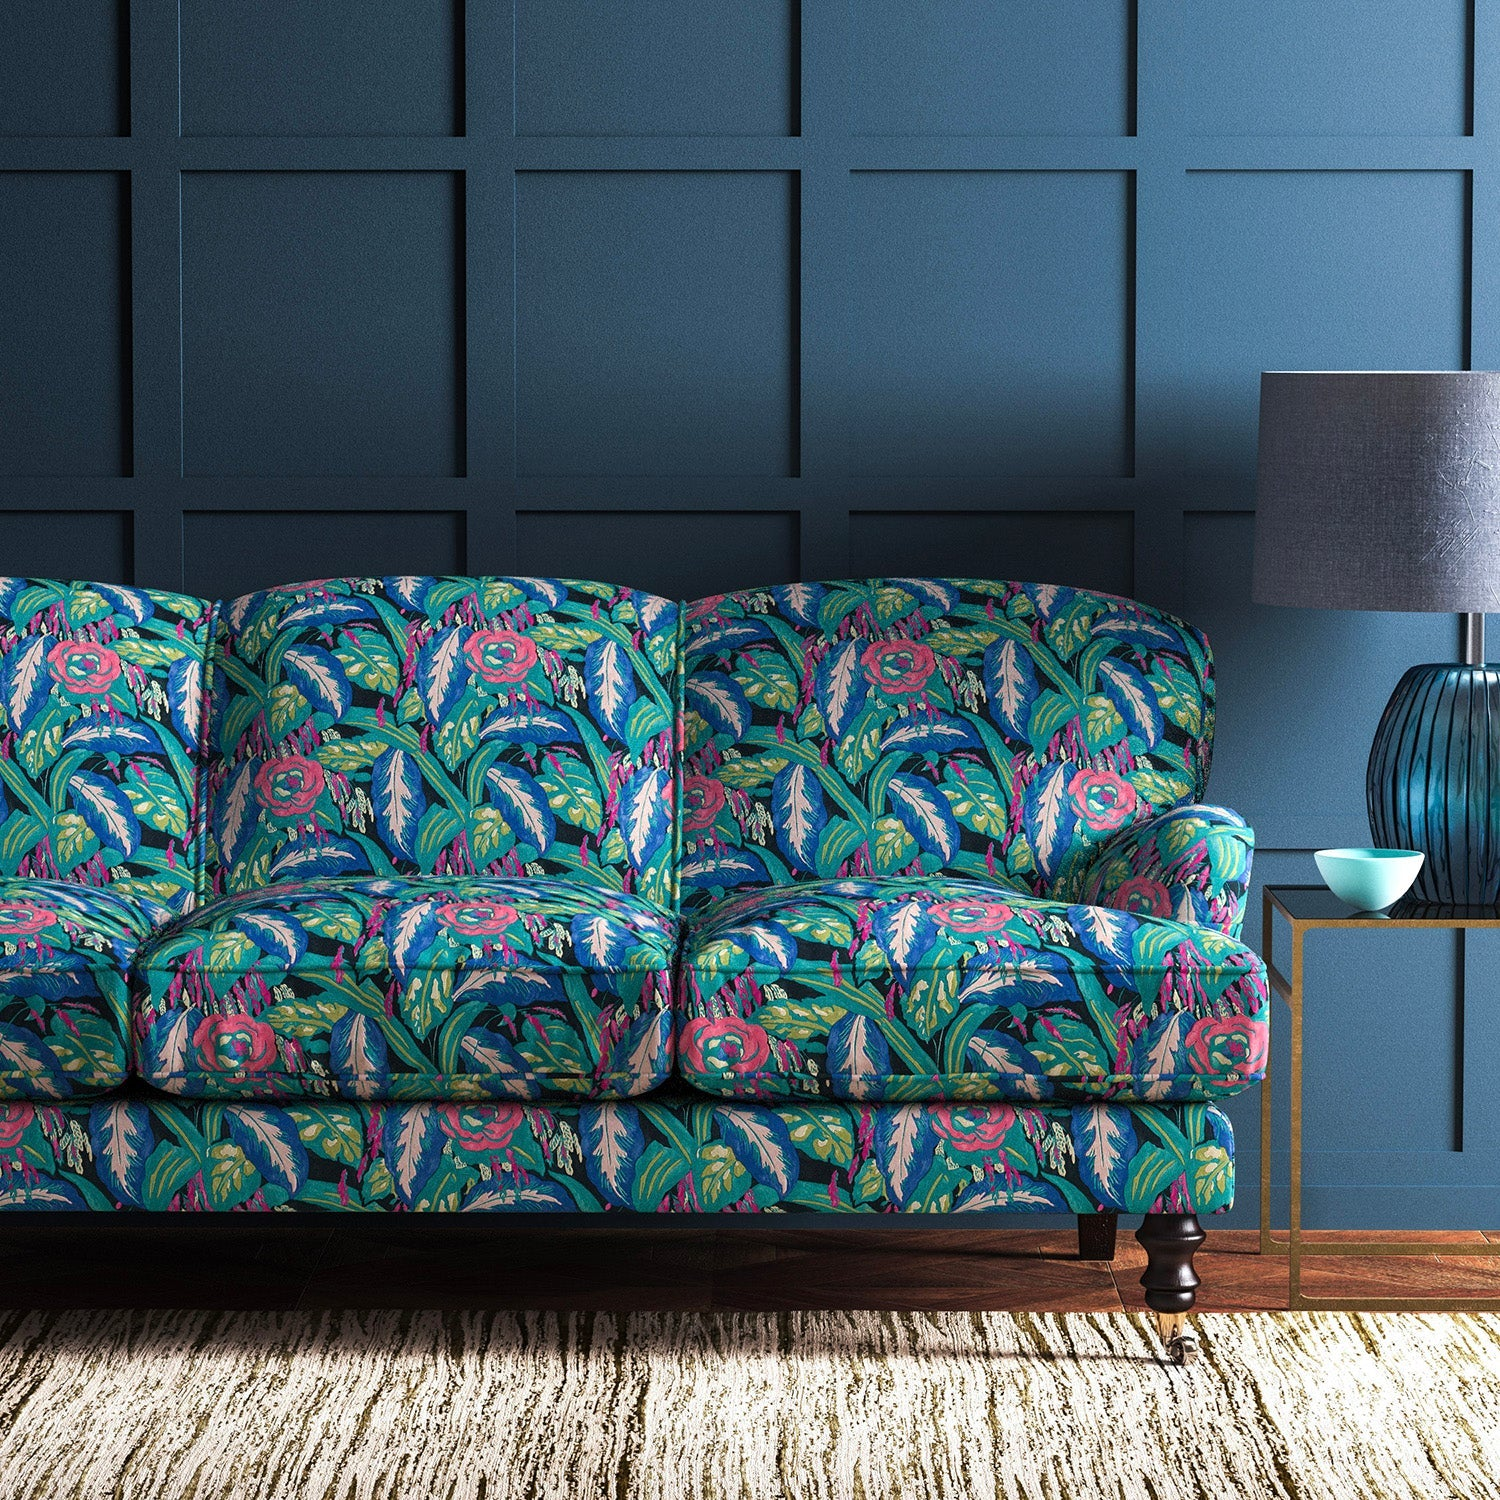 Velvet sofa upholstered in a pink and bright blue floral velvet upholstery fabric with a stain resistant finish